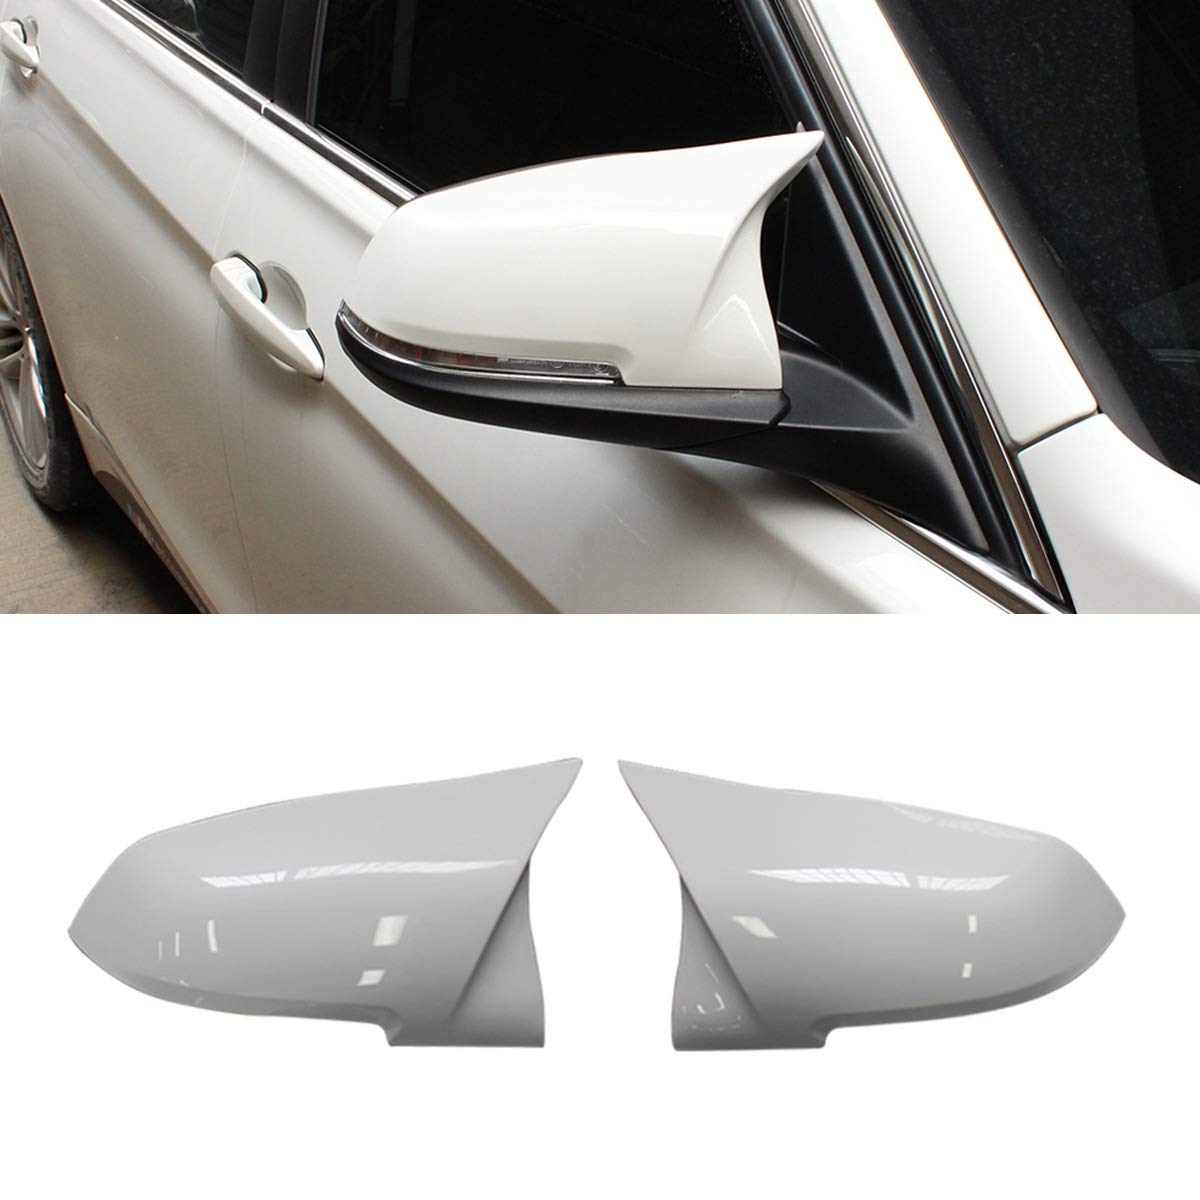 X1 Sereis E84 2013-2015 M2 Replacement Carbon Fiber Rearview Side Mirror Covers Trim for BMW 3 Series F30 F34 F31 1 Series F20 F21 2 Series F22 F23 4 Series F32 F33 F36 F87 Fandixin F30 Mirror Cover